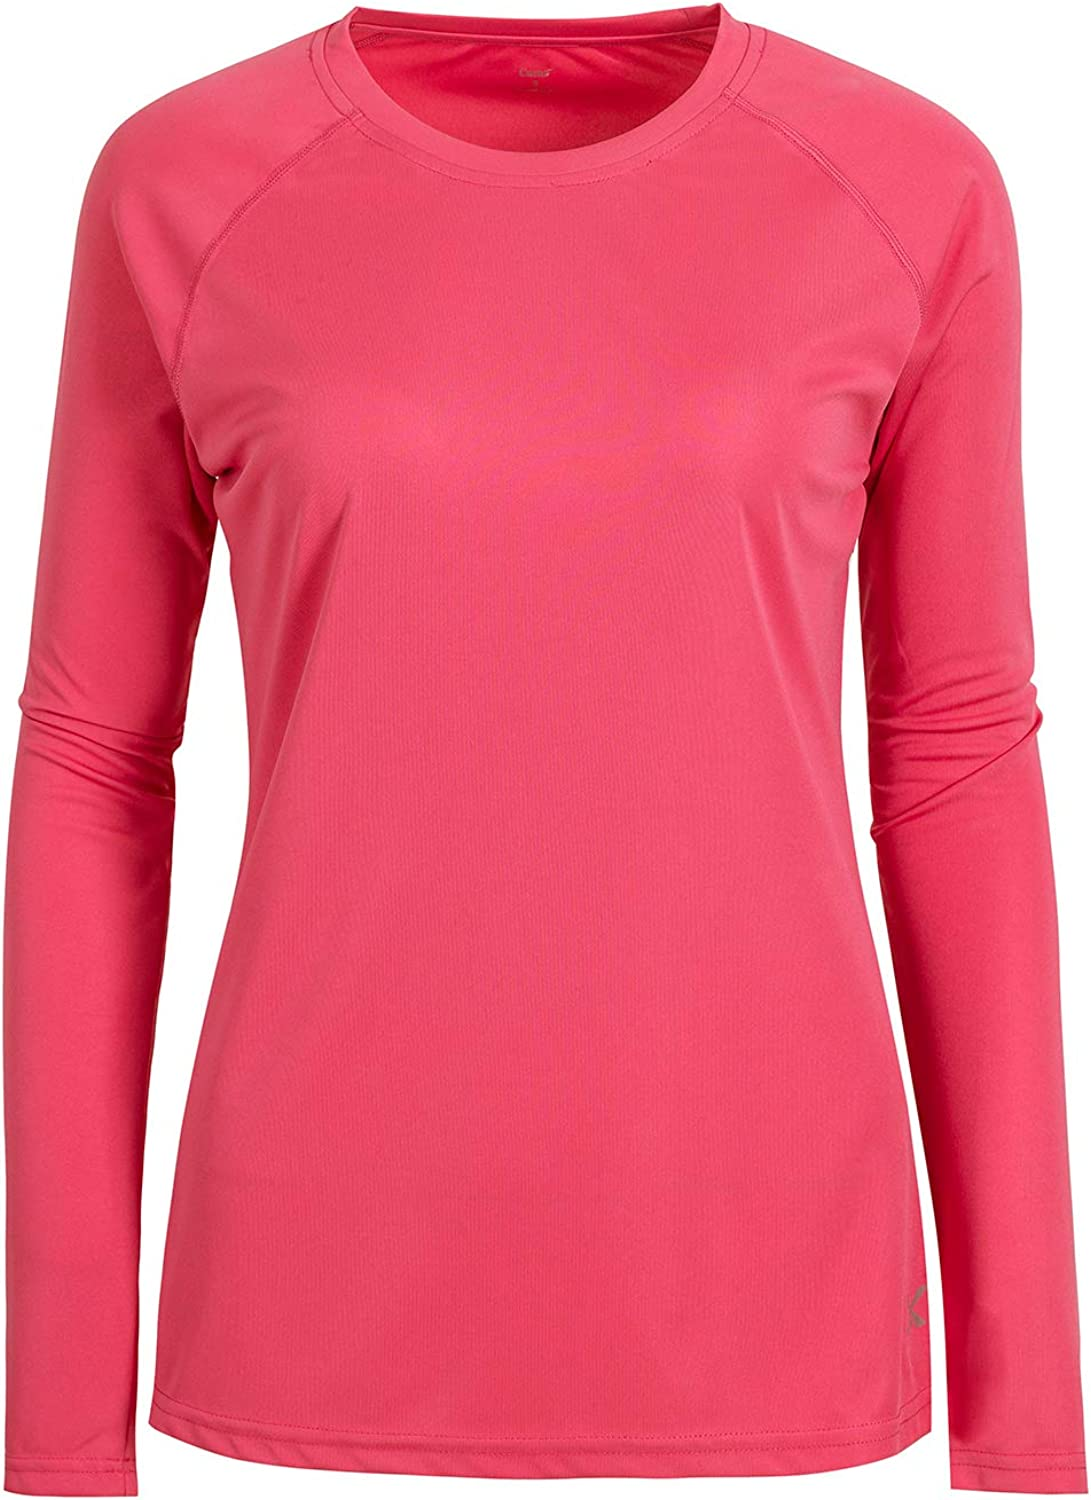 Women's UPF 50+ Sun Protection Long Sleeve T-Shirt Performance Active Top  Golf Shirts Workout Sports Leisure Slim Fit at Amazon Women's Clothing store